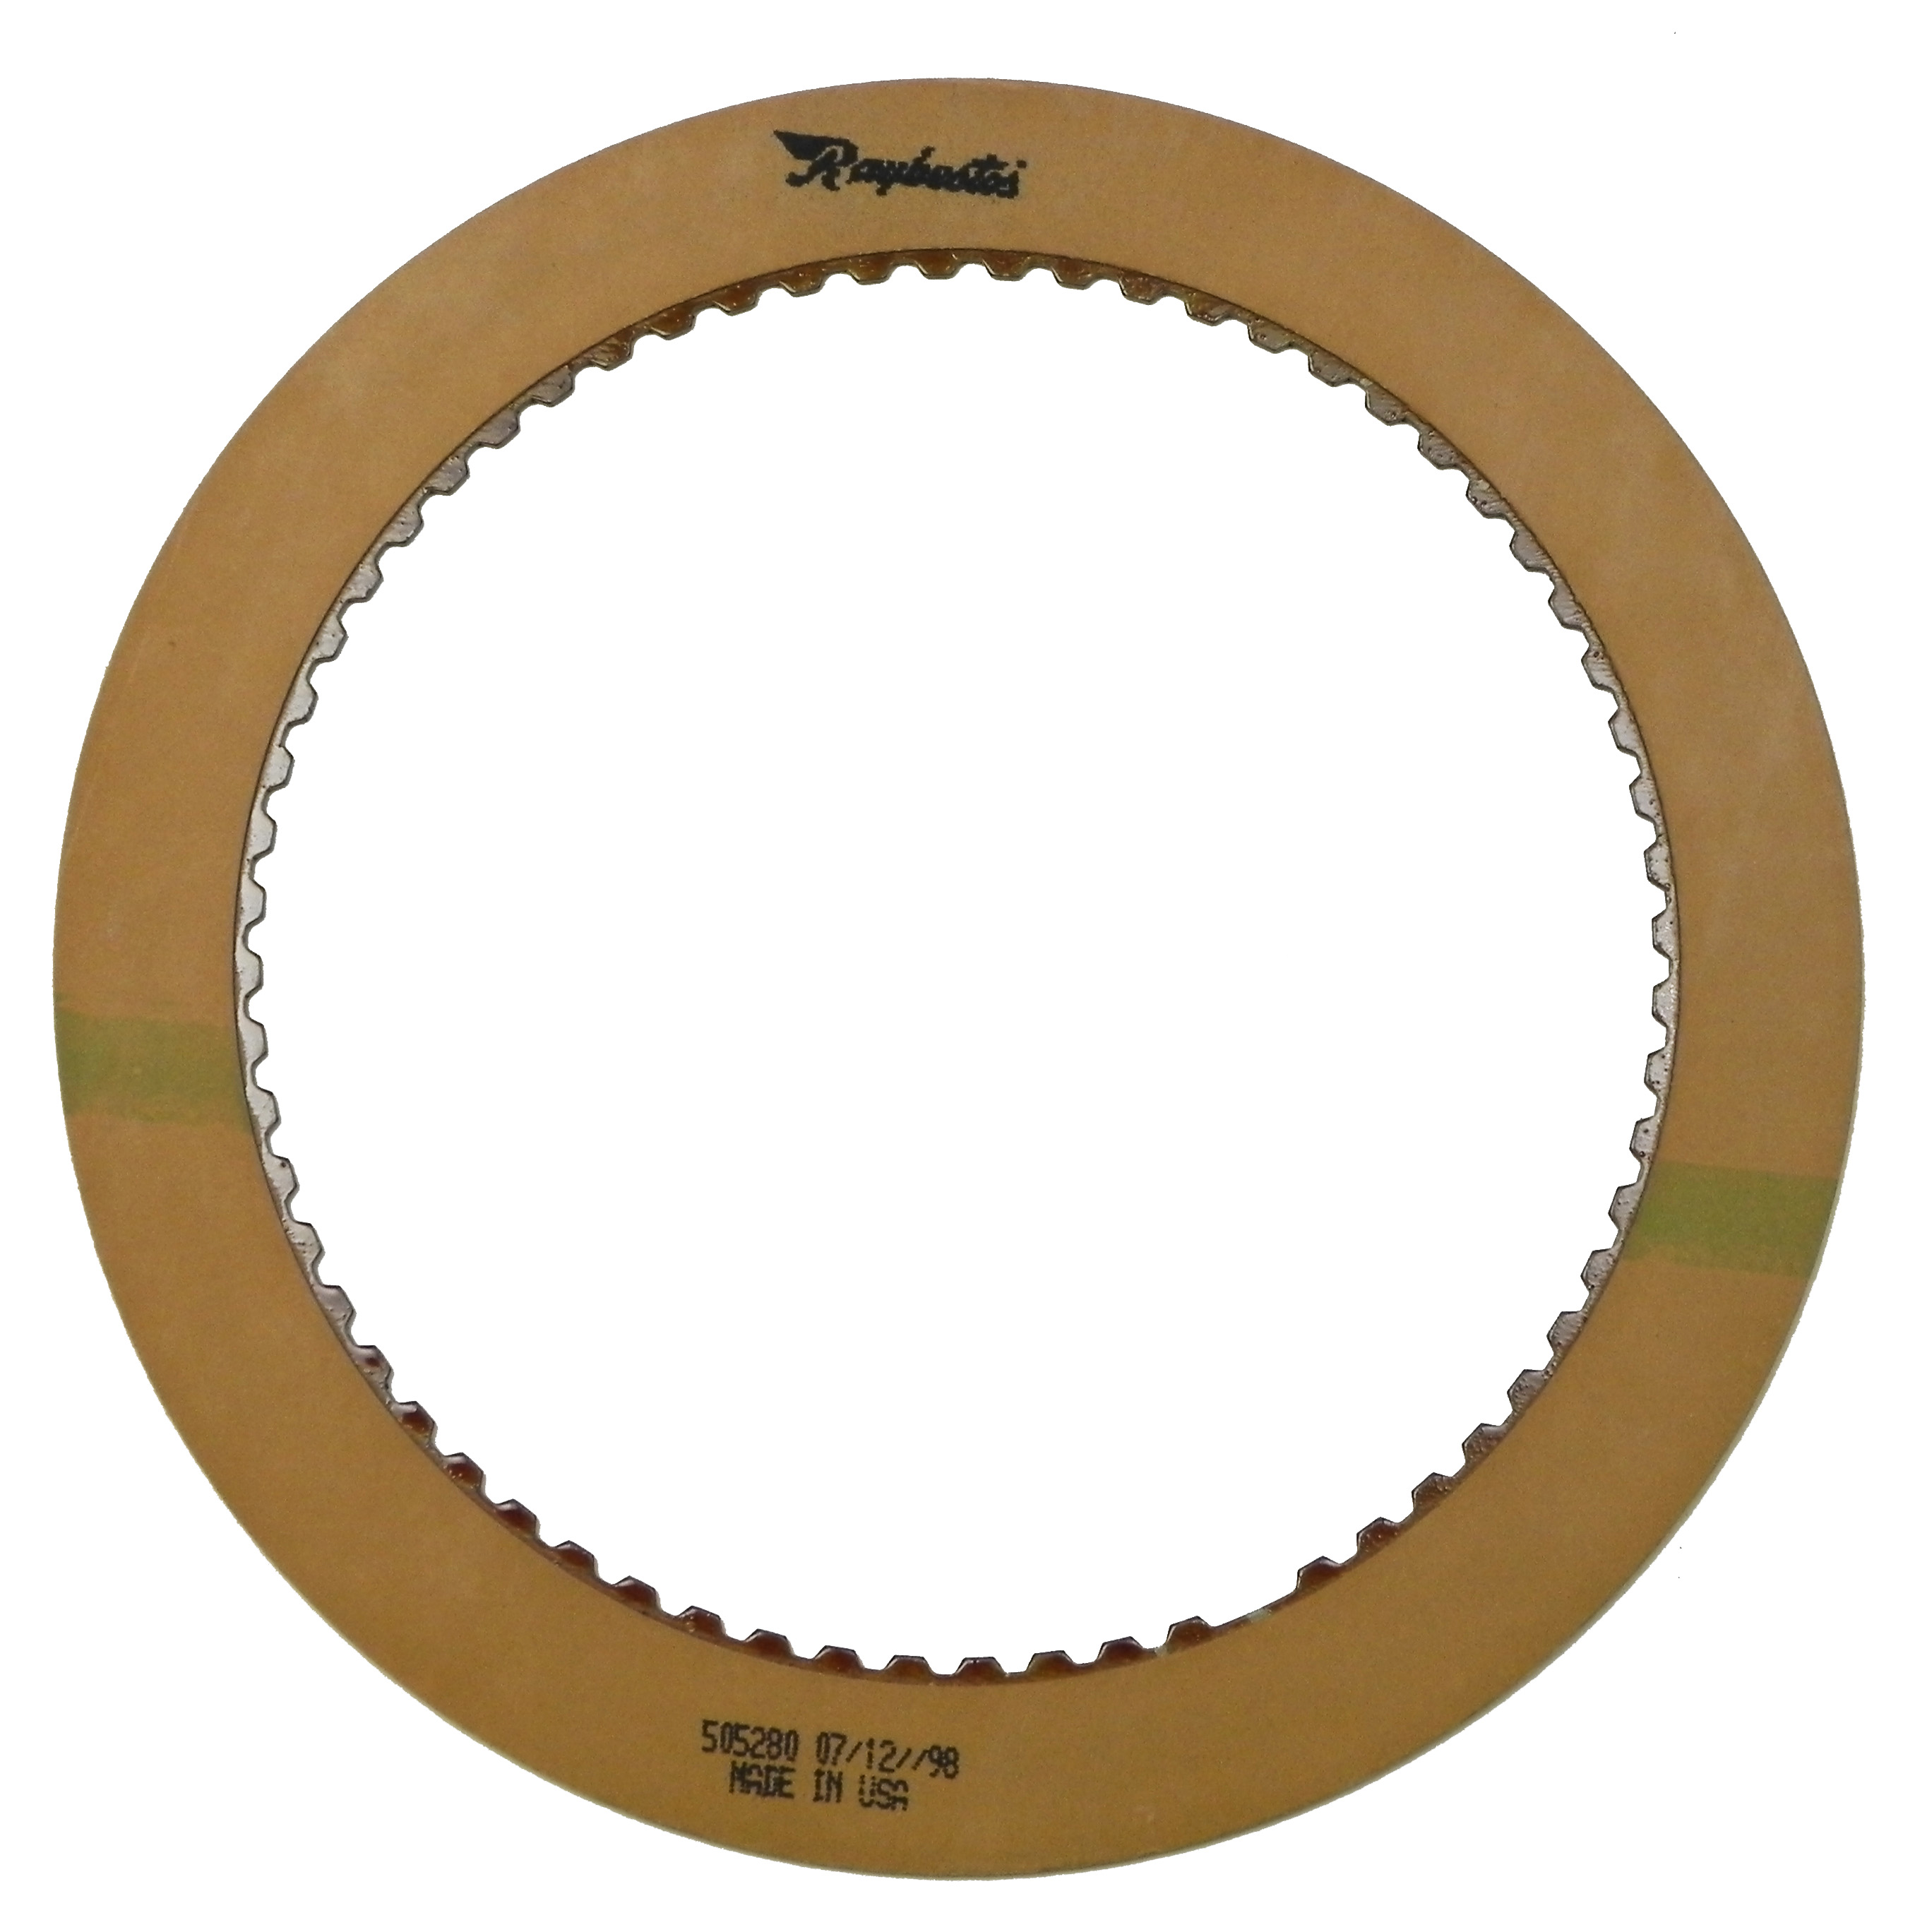 R505280 | 1976-1996 Friction Clutch Plate OE Replacement Direct,1st Design